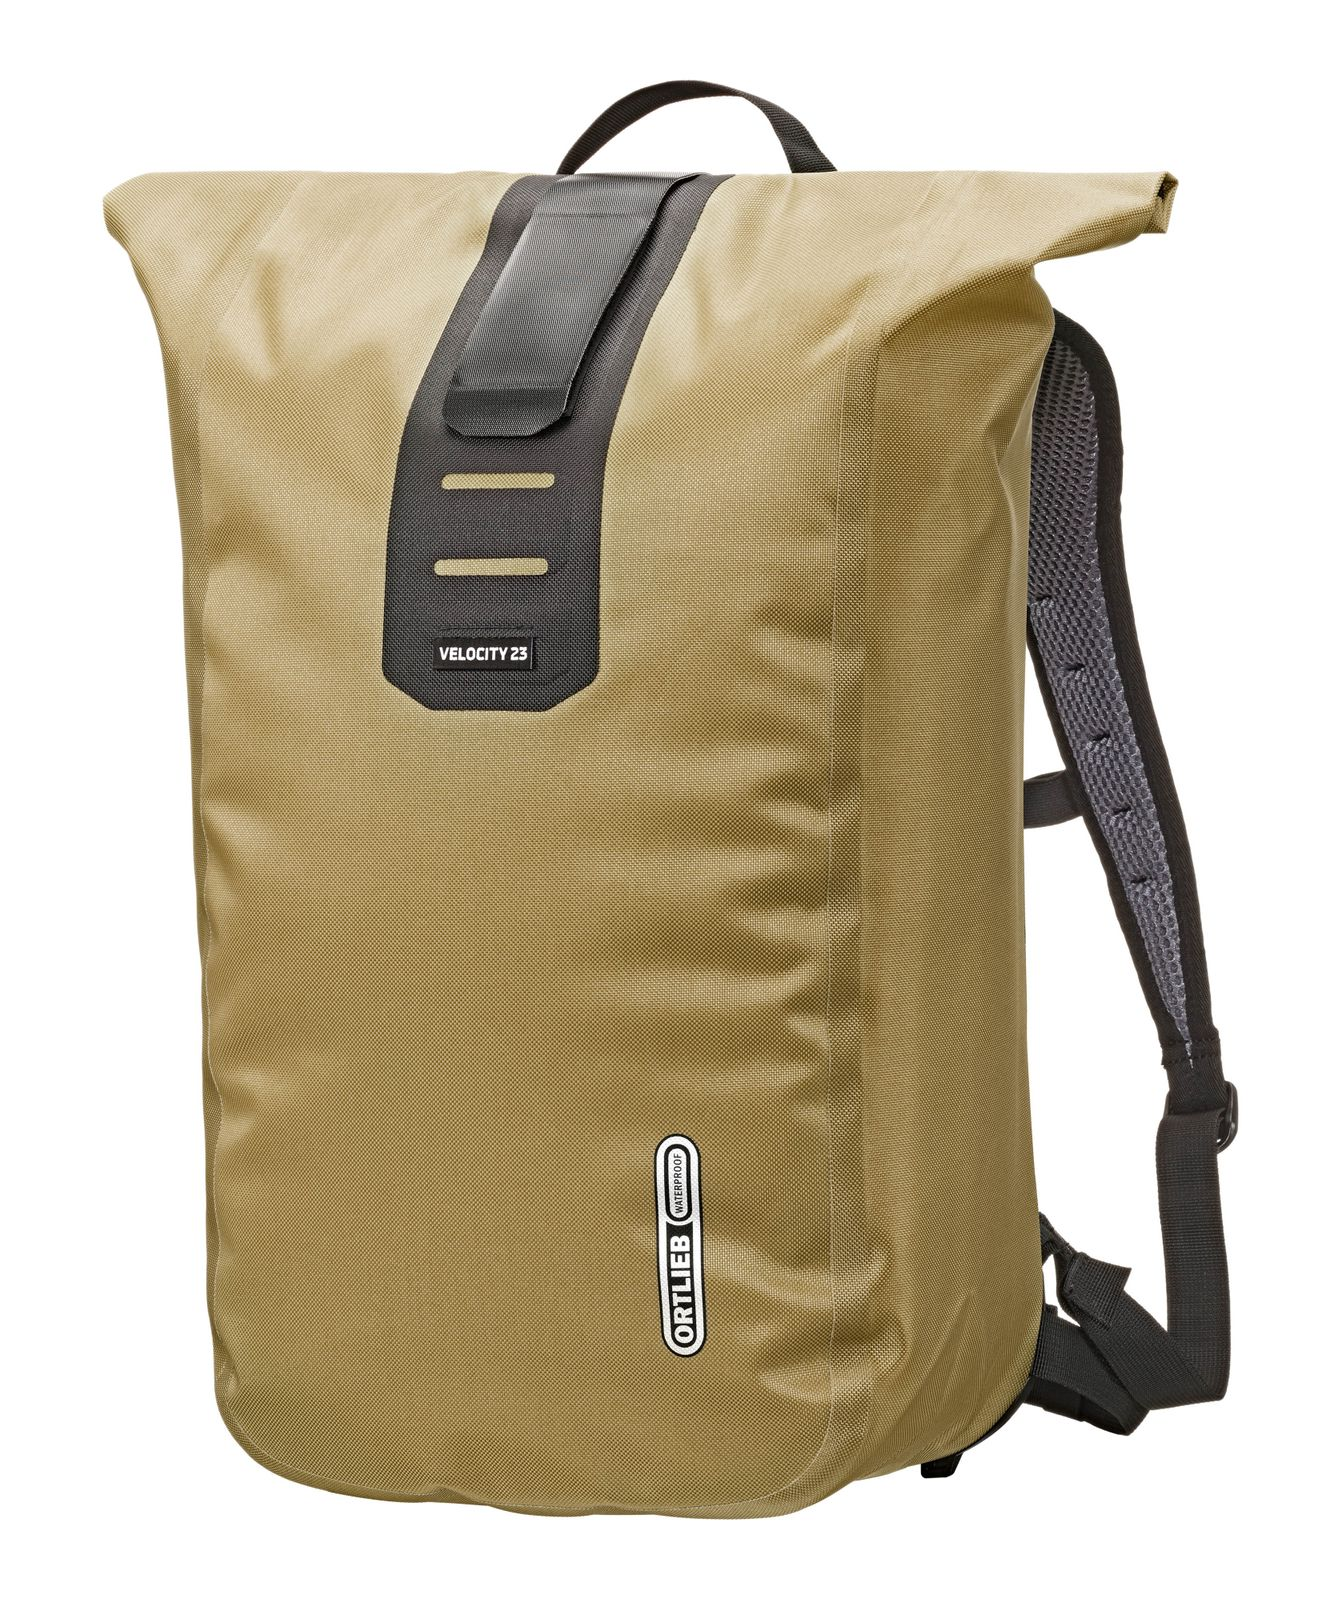 ORTLIEB Velocity PS City Backpack 23L Mustard